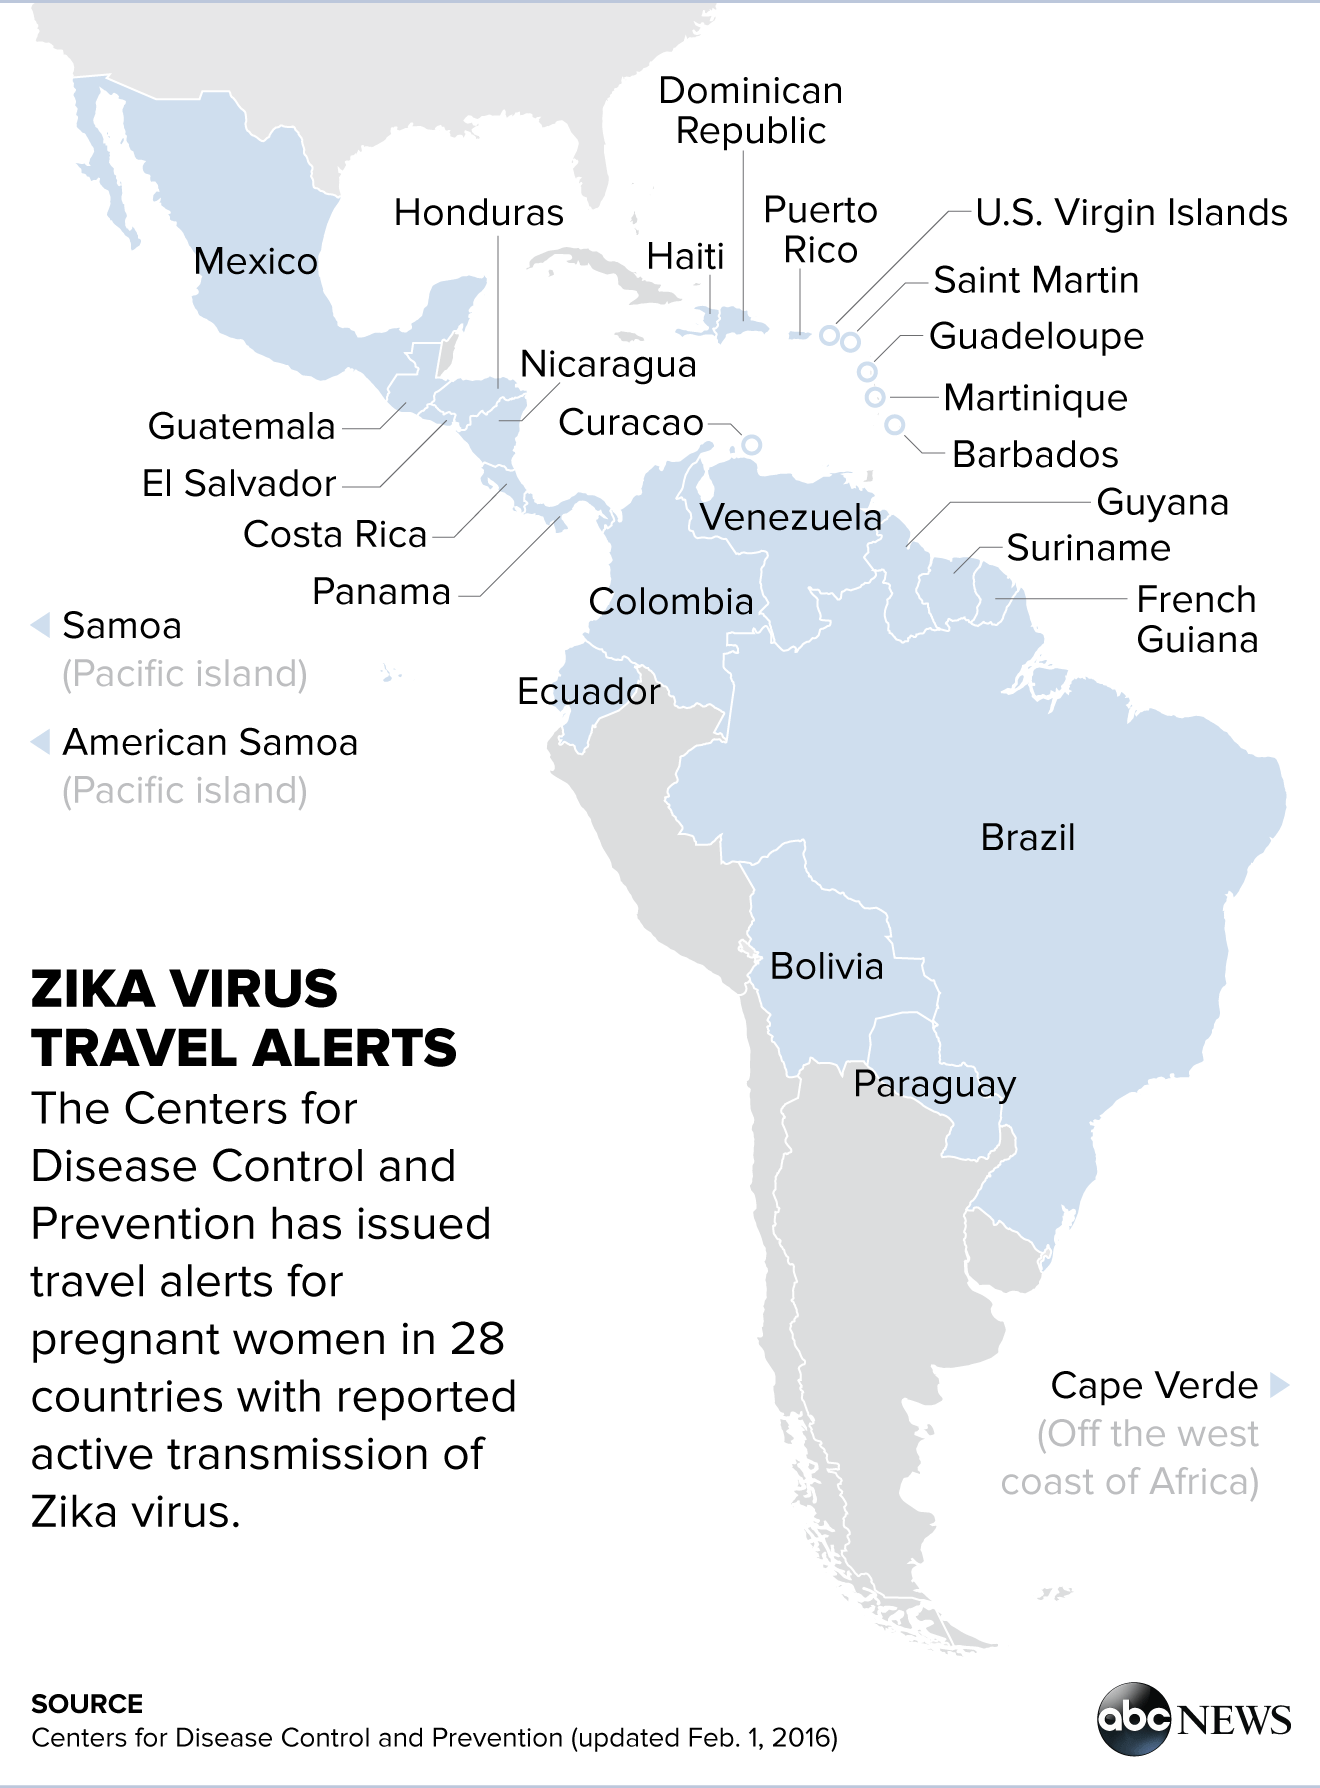 Us Travel Advisory Brazil Lifehacked1st Com